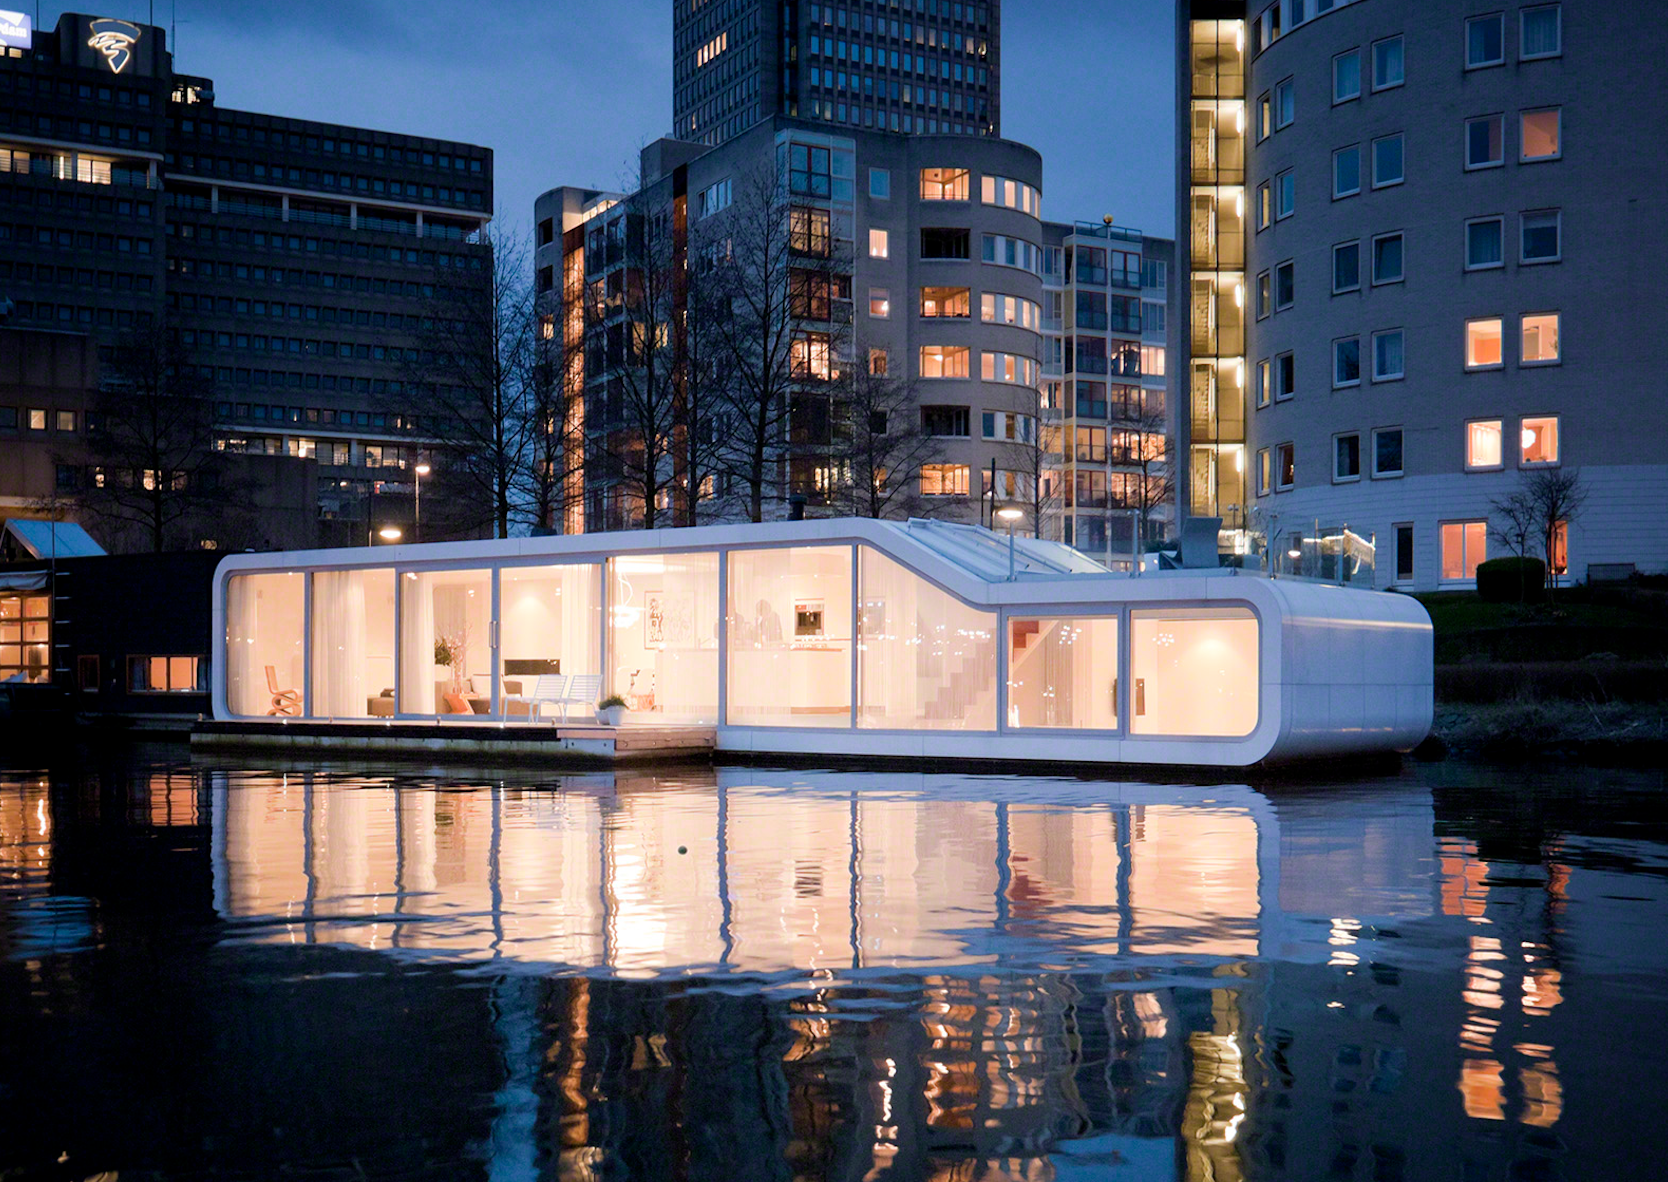 Watervilla de Omval, Amsterdam, the Netherlands. Photo: Iwan Baan